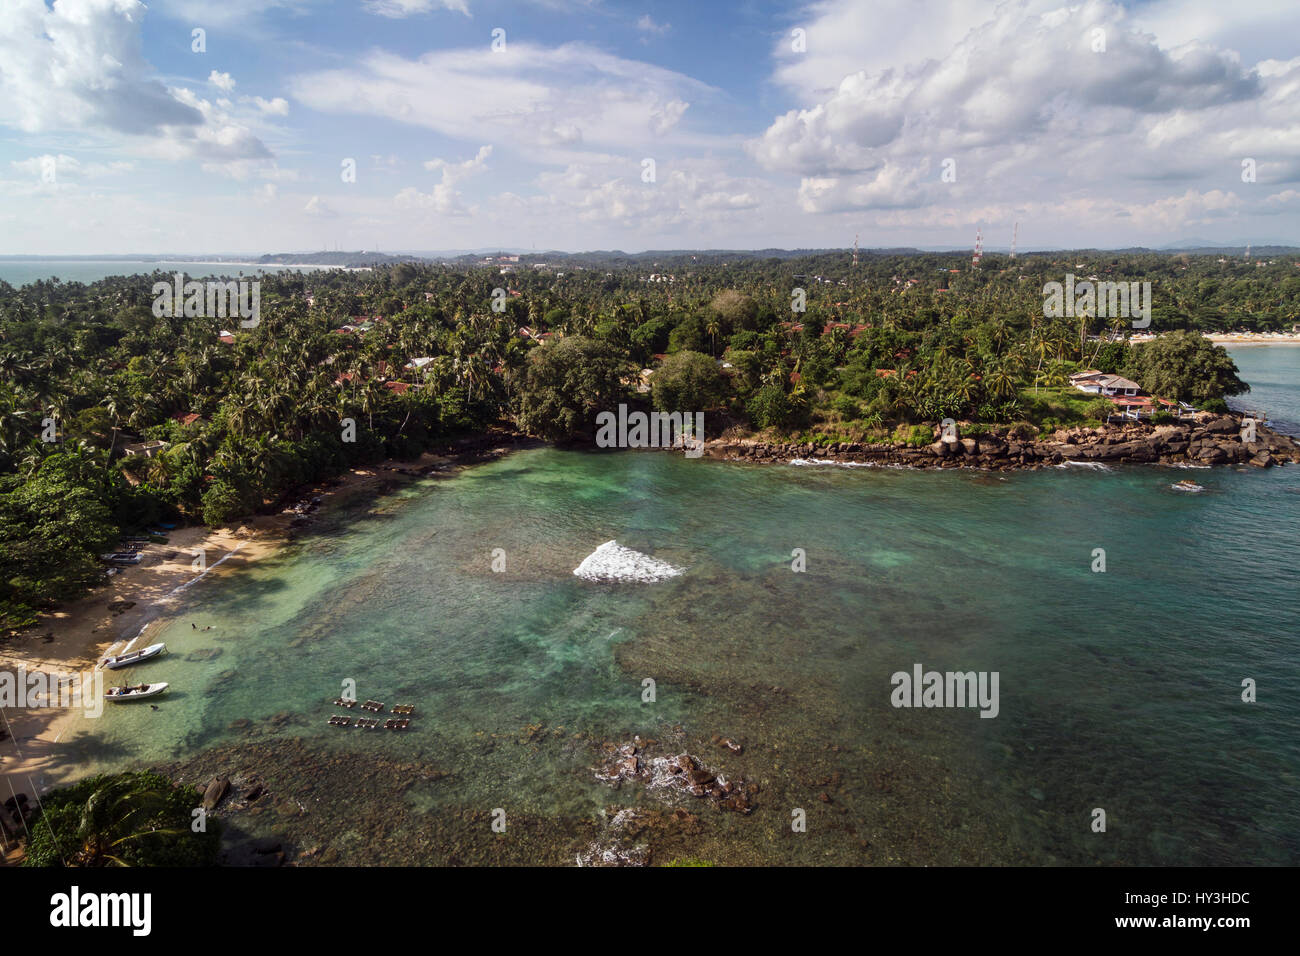 Colorful landscape of Sri Lanka coastline - Stock Image